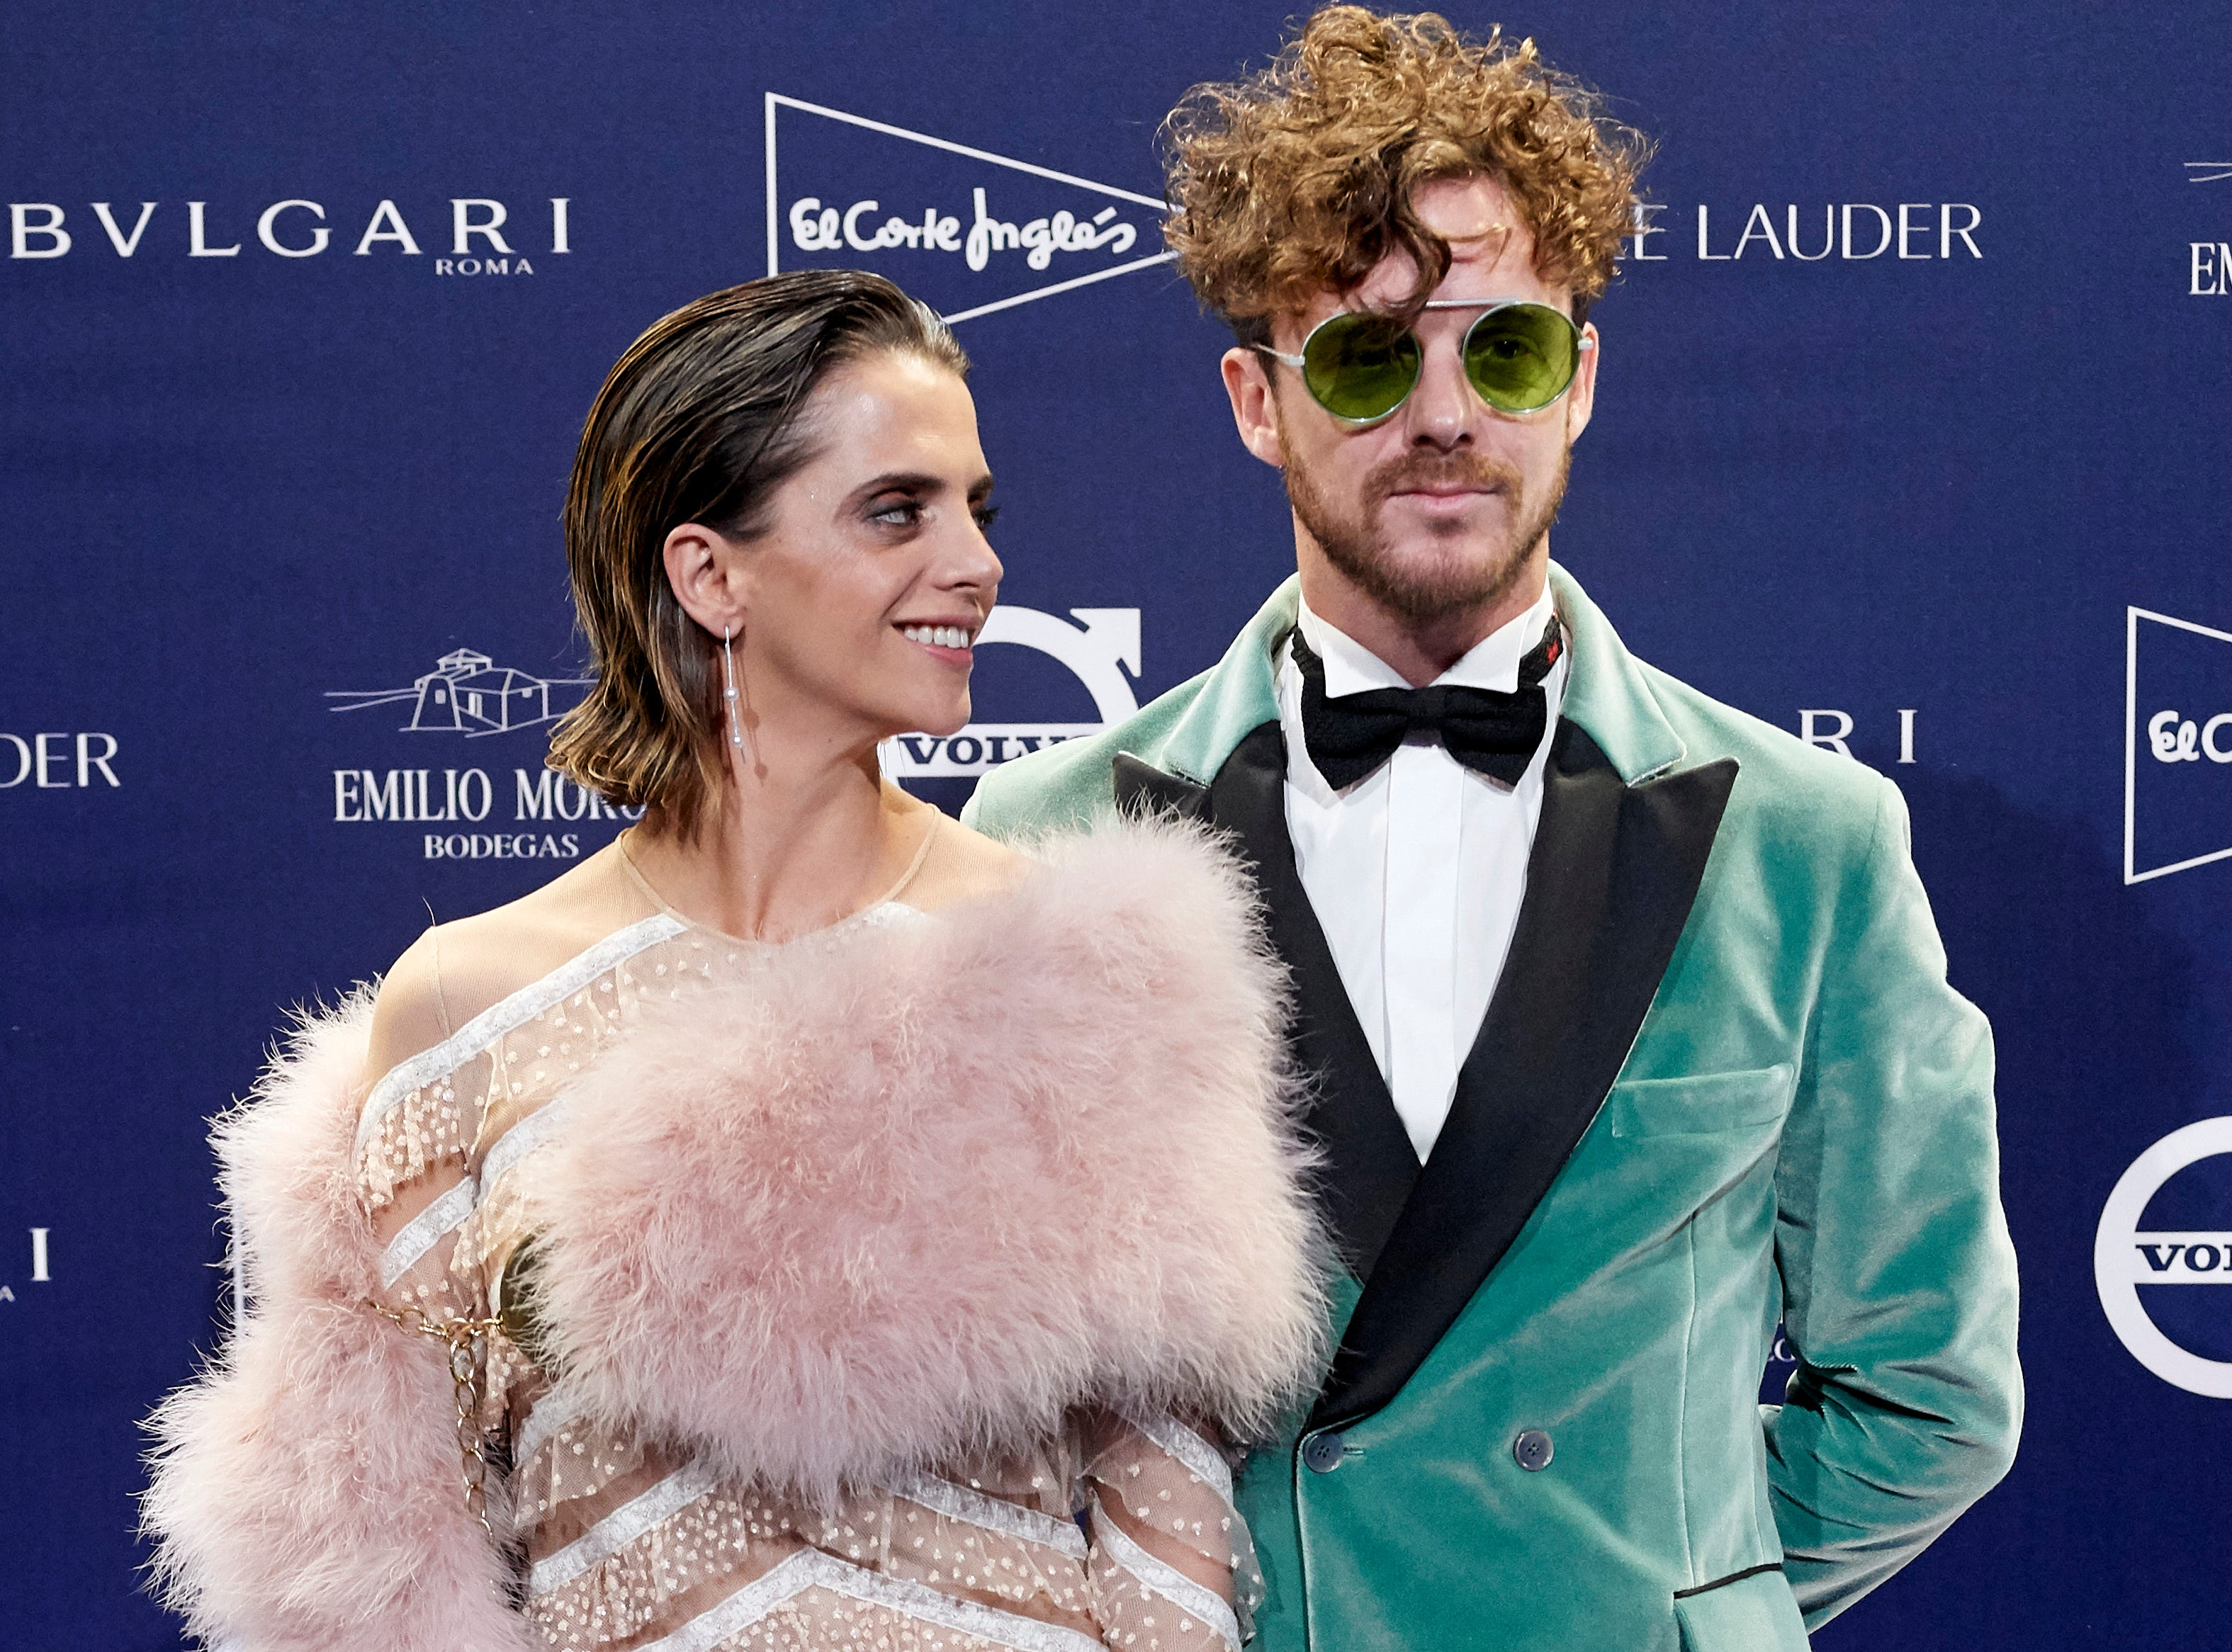 Actress Macarena Gomez and husband Aldo Comas attend an event at the Real Academia de Bellas Artes de San Fernando Museum on October 9, 2018 in Madrid, Spain.